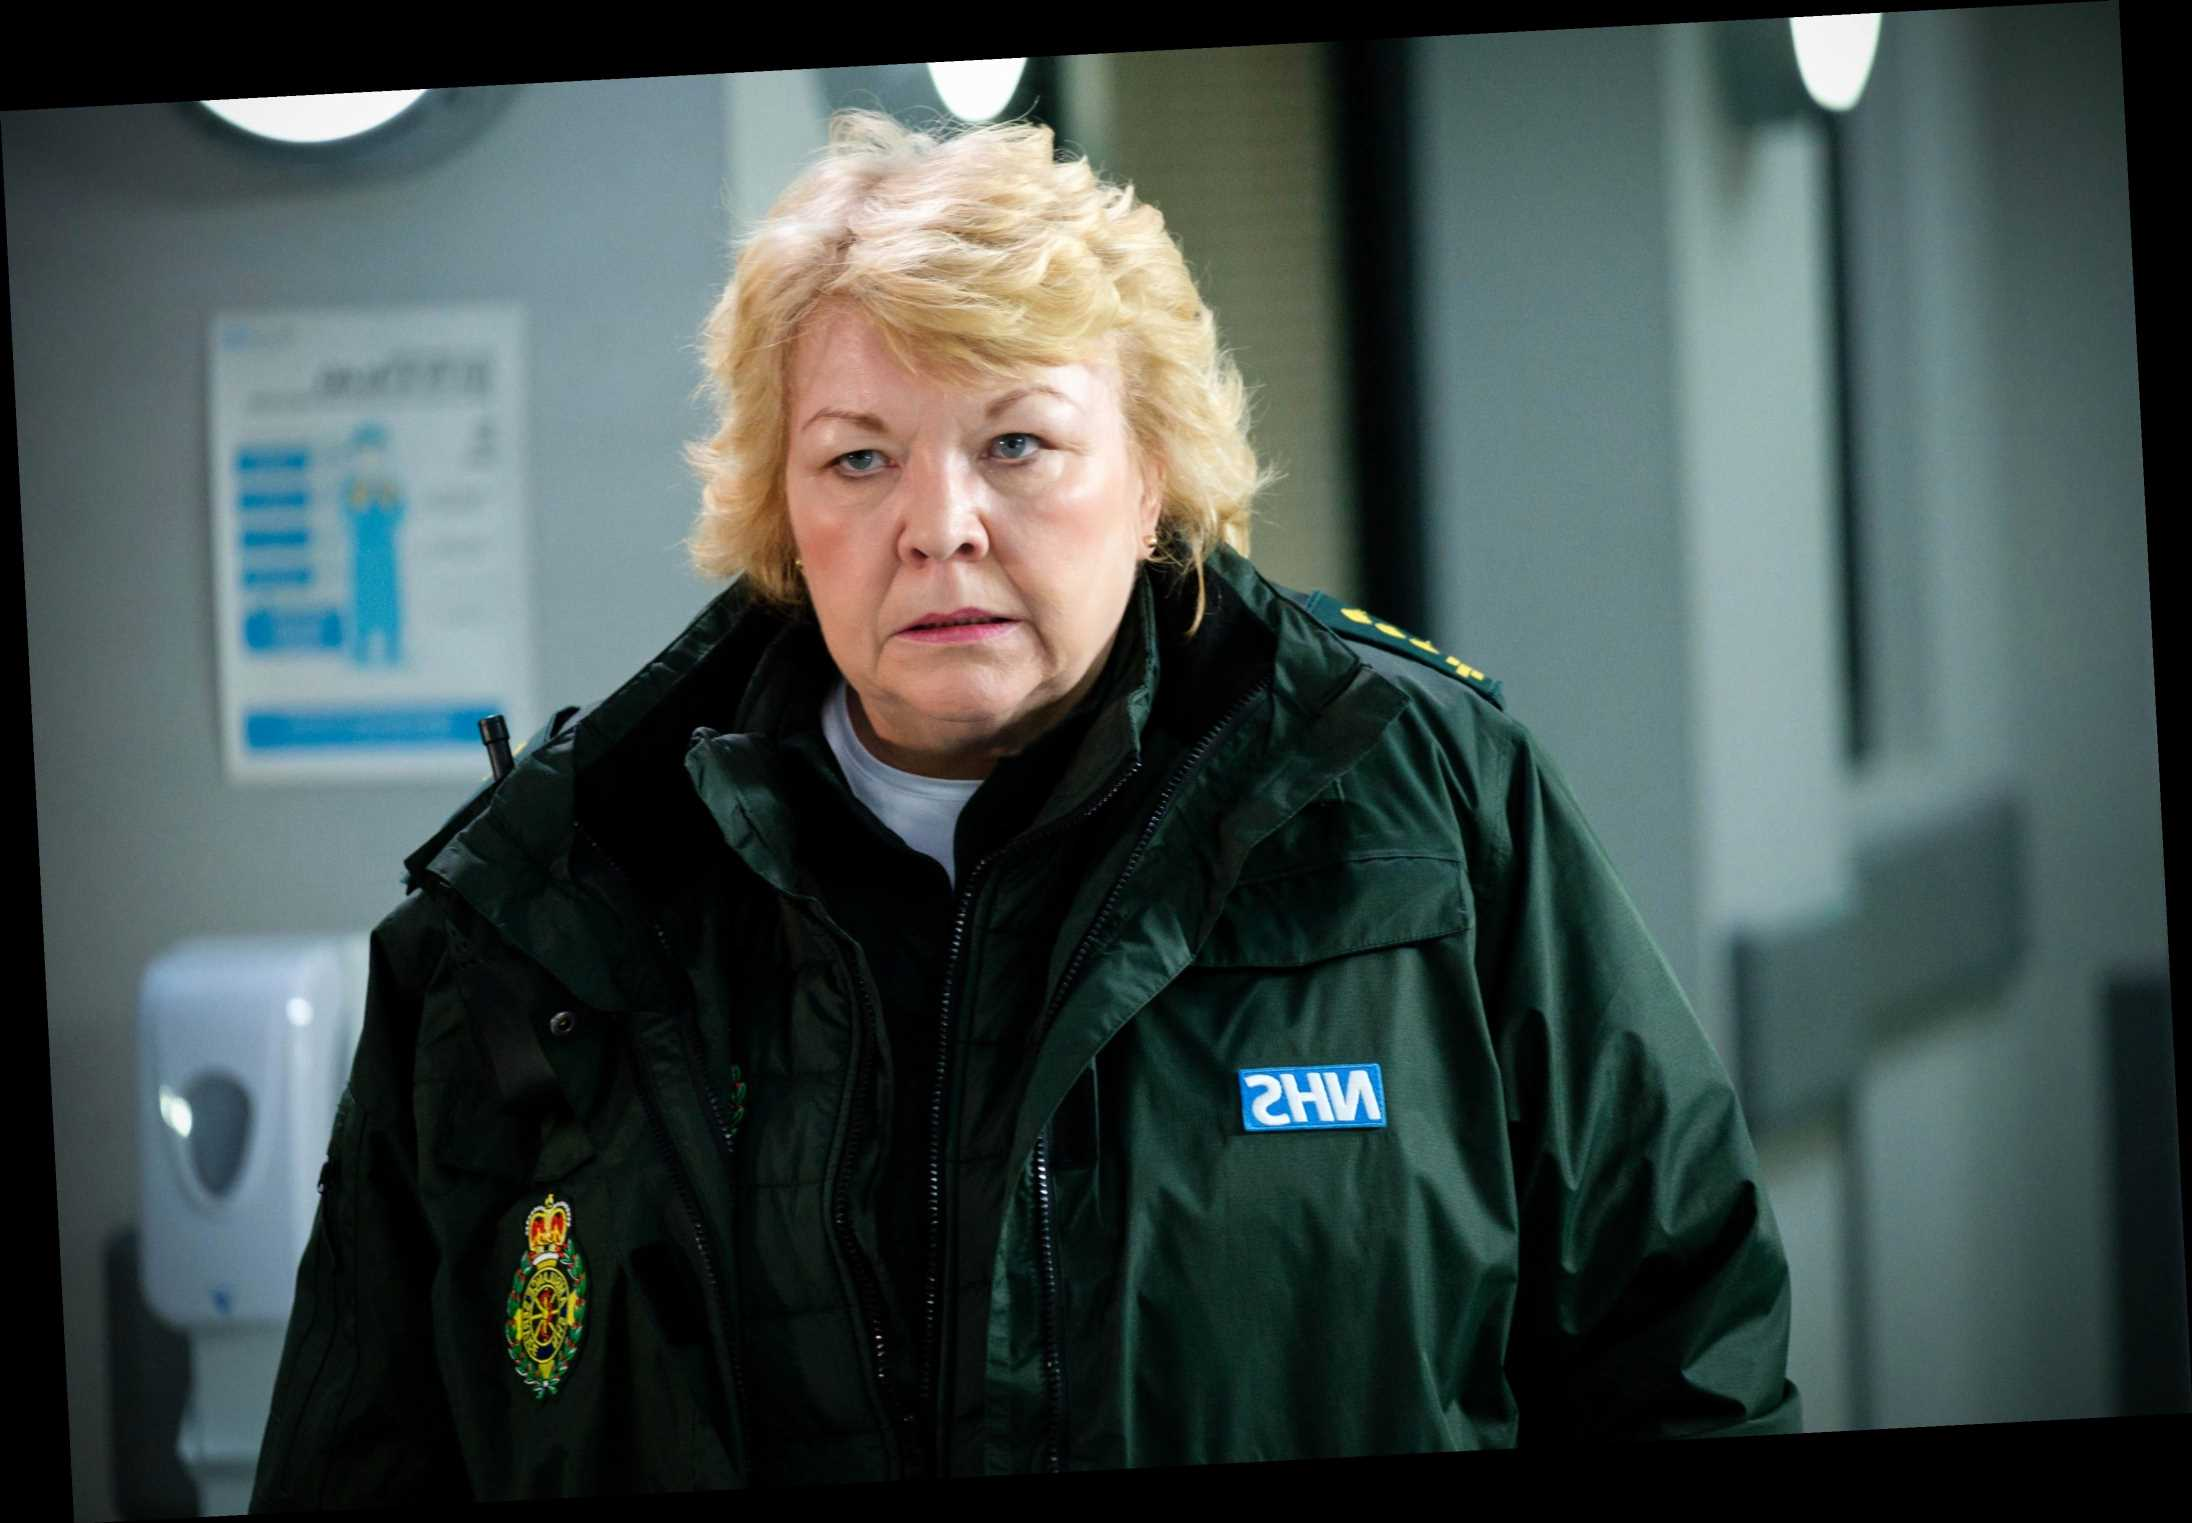 Casualty spoilers: Jan risks everything to save her son's life, while Jacob and Connie have explosive showdown